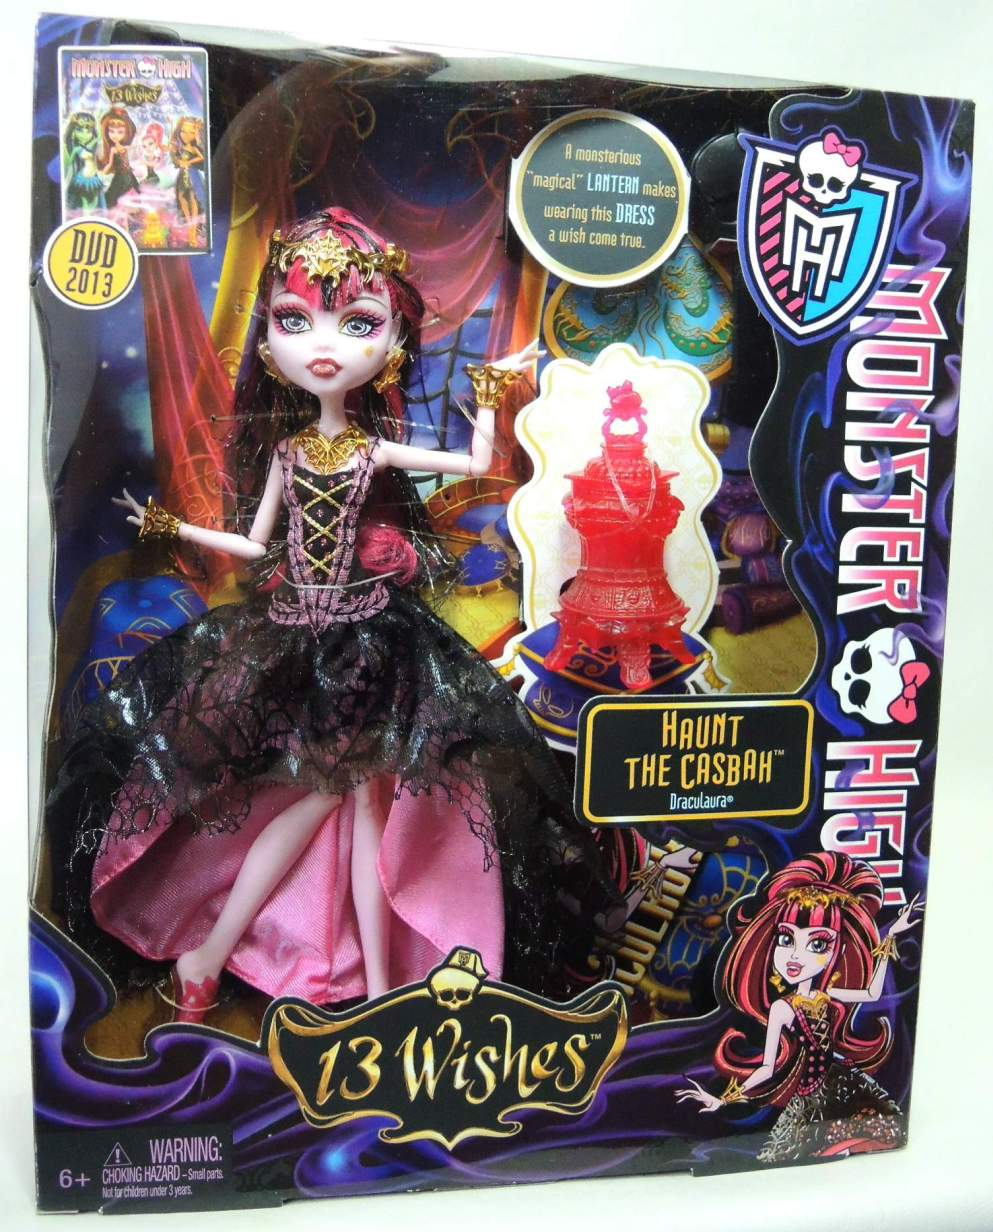 Monster High 13 Wishes Haunt the Casbah Draculaura Mattel, Monster High, Dolls, 2012, teen, fashion, movie